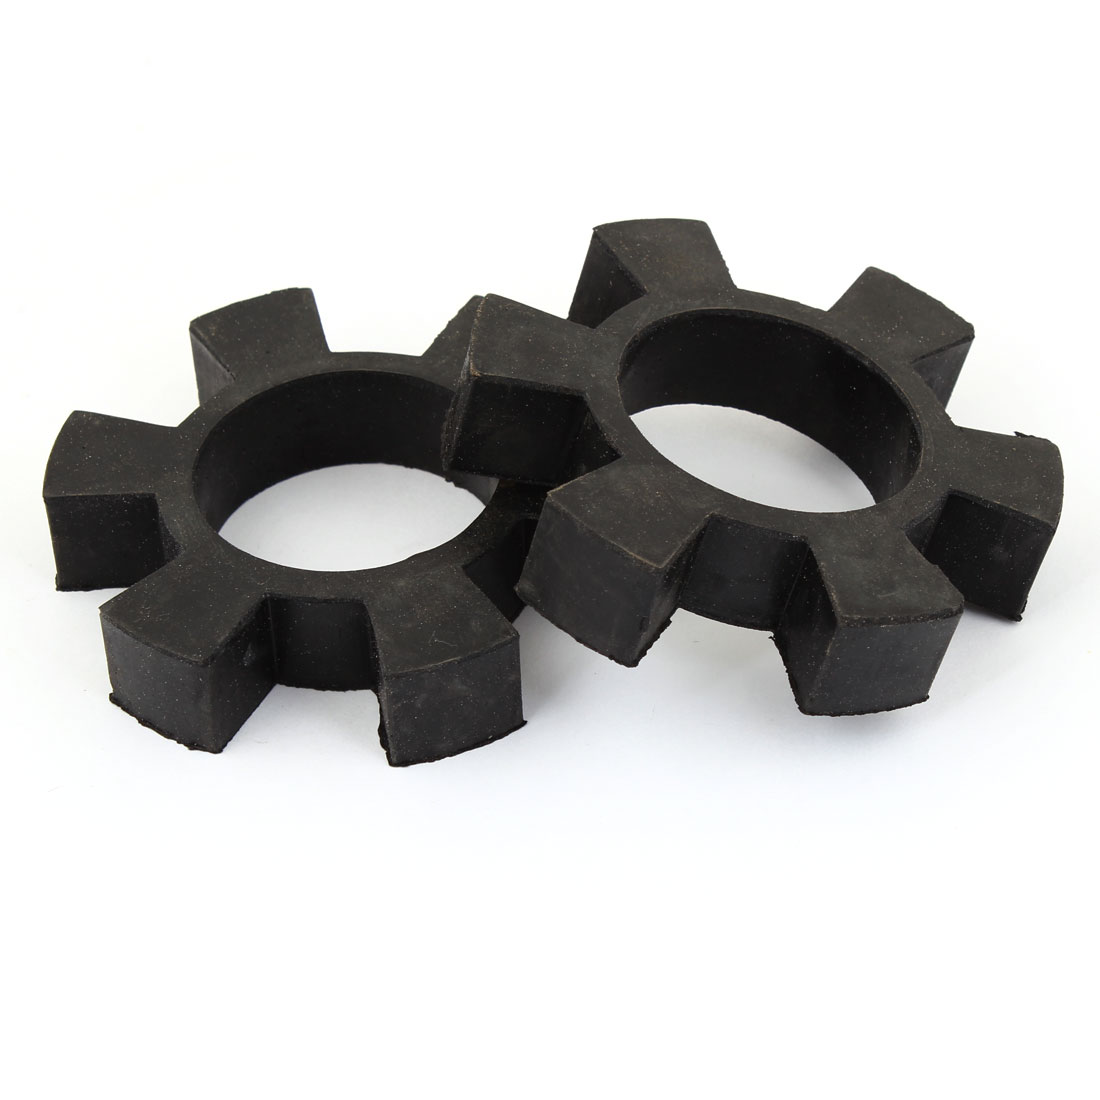 2 Pcs 79mm OD 6 Petals Rubber Driveshaft Coupler Damper Insert Black